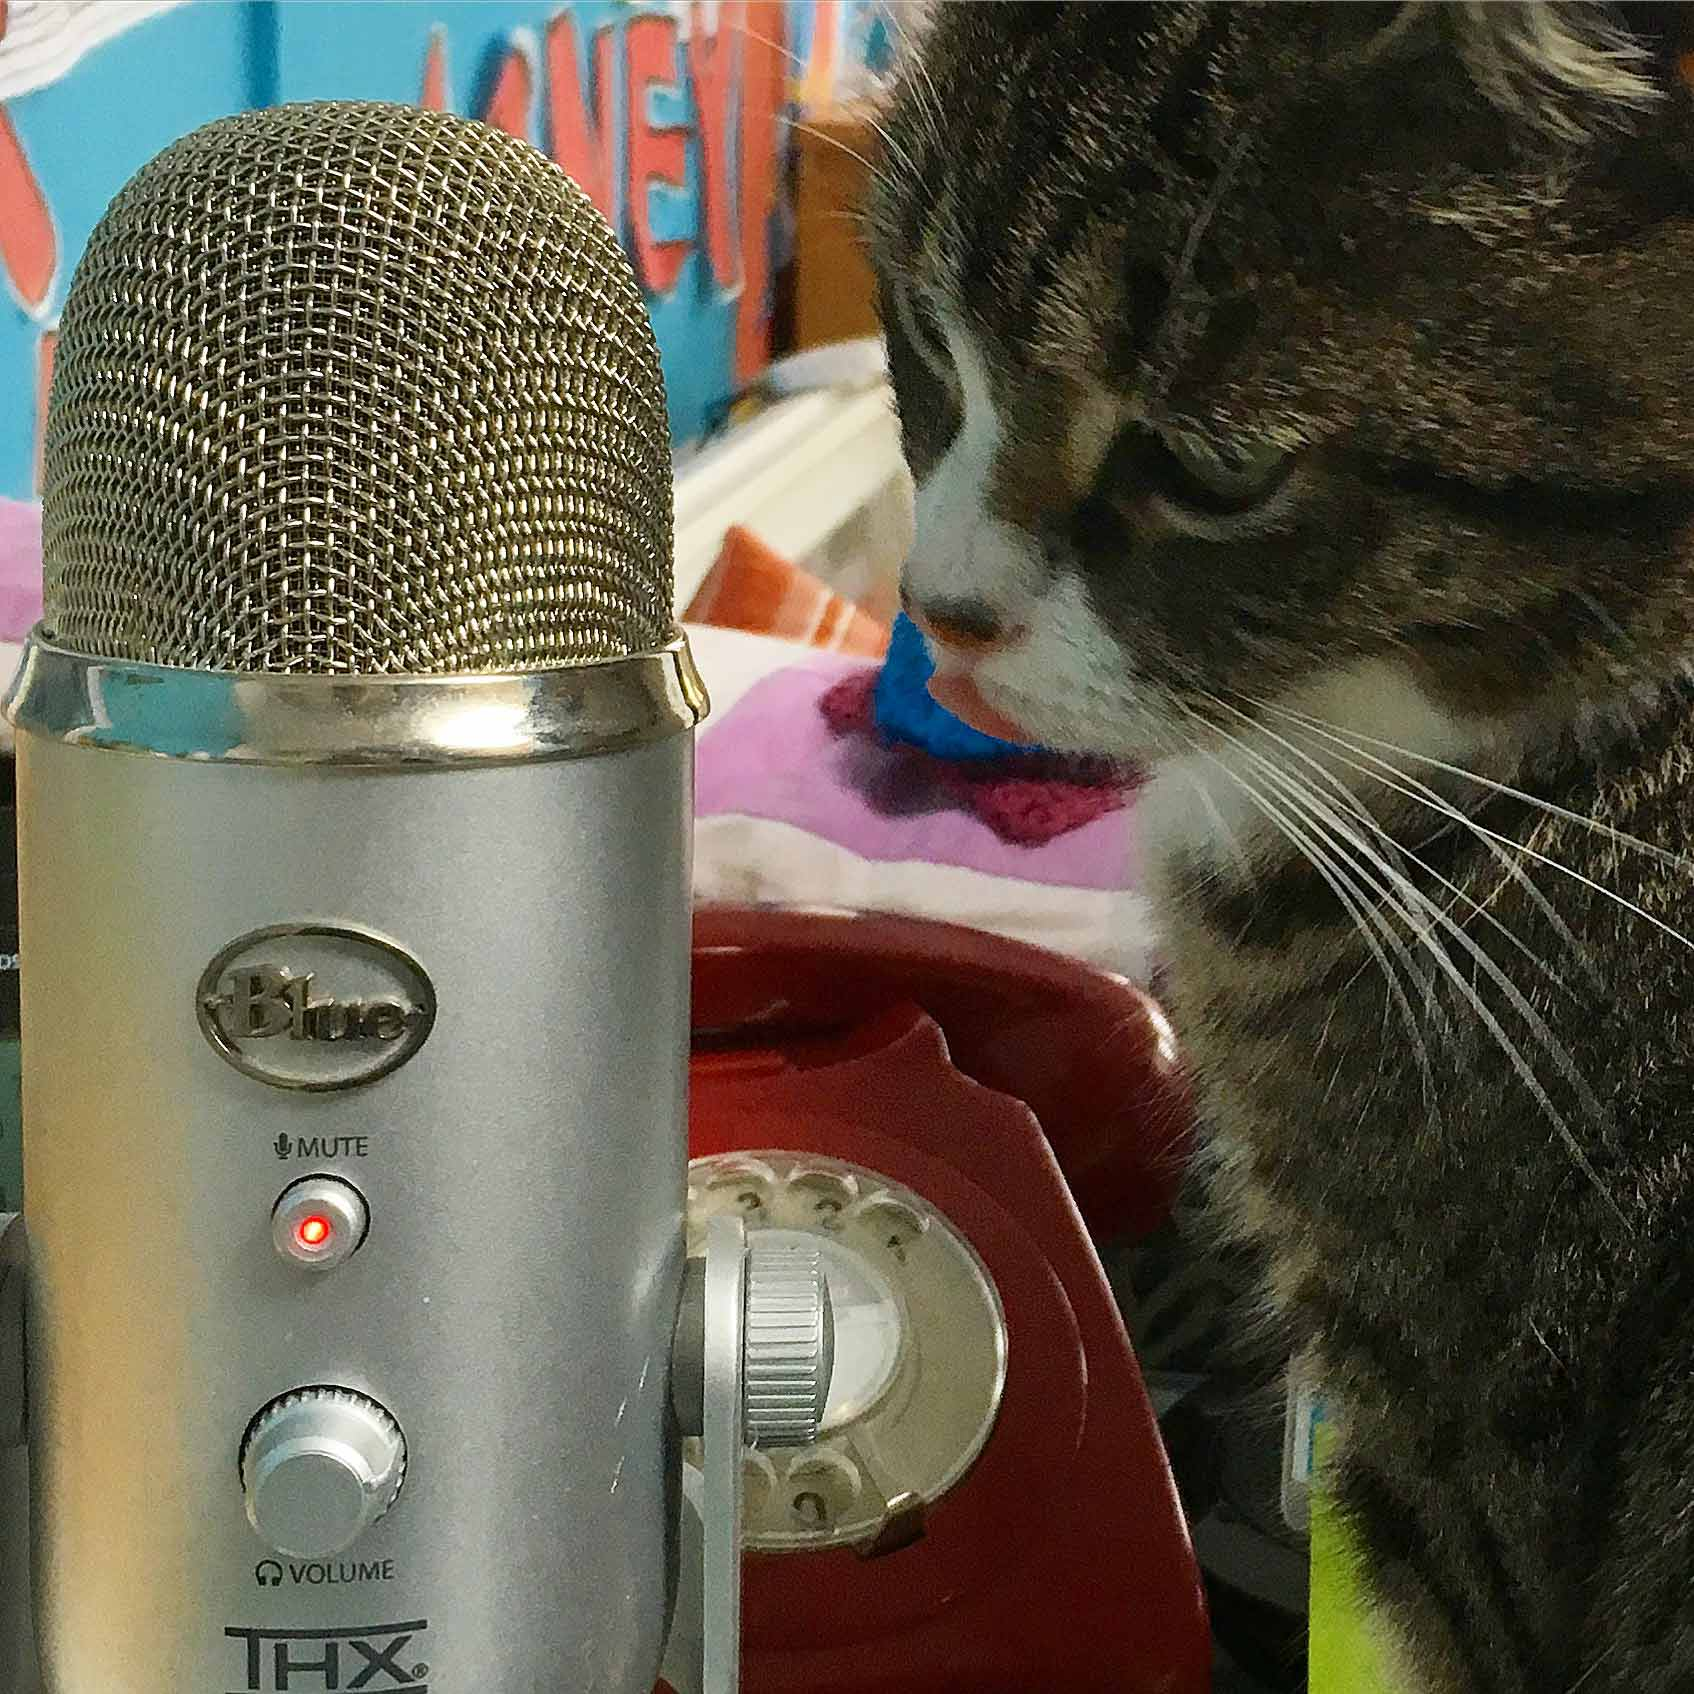 Ounce podcasting